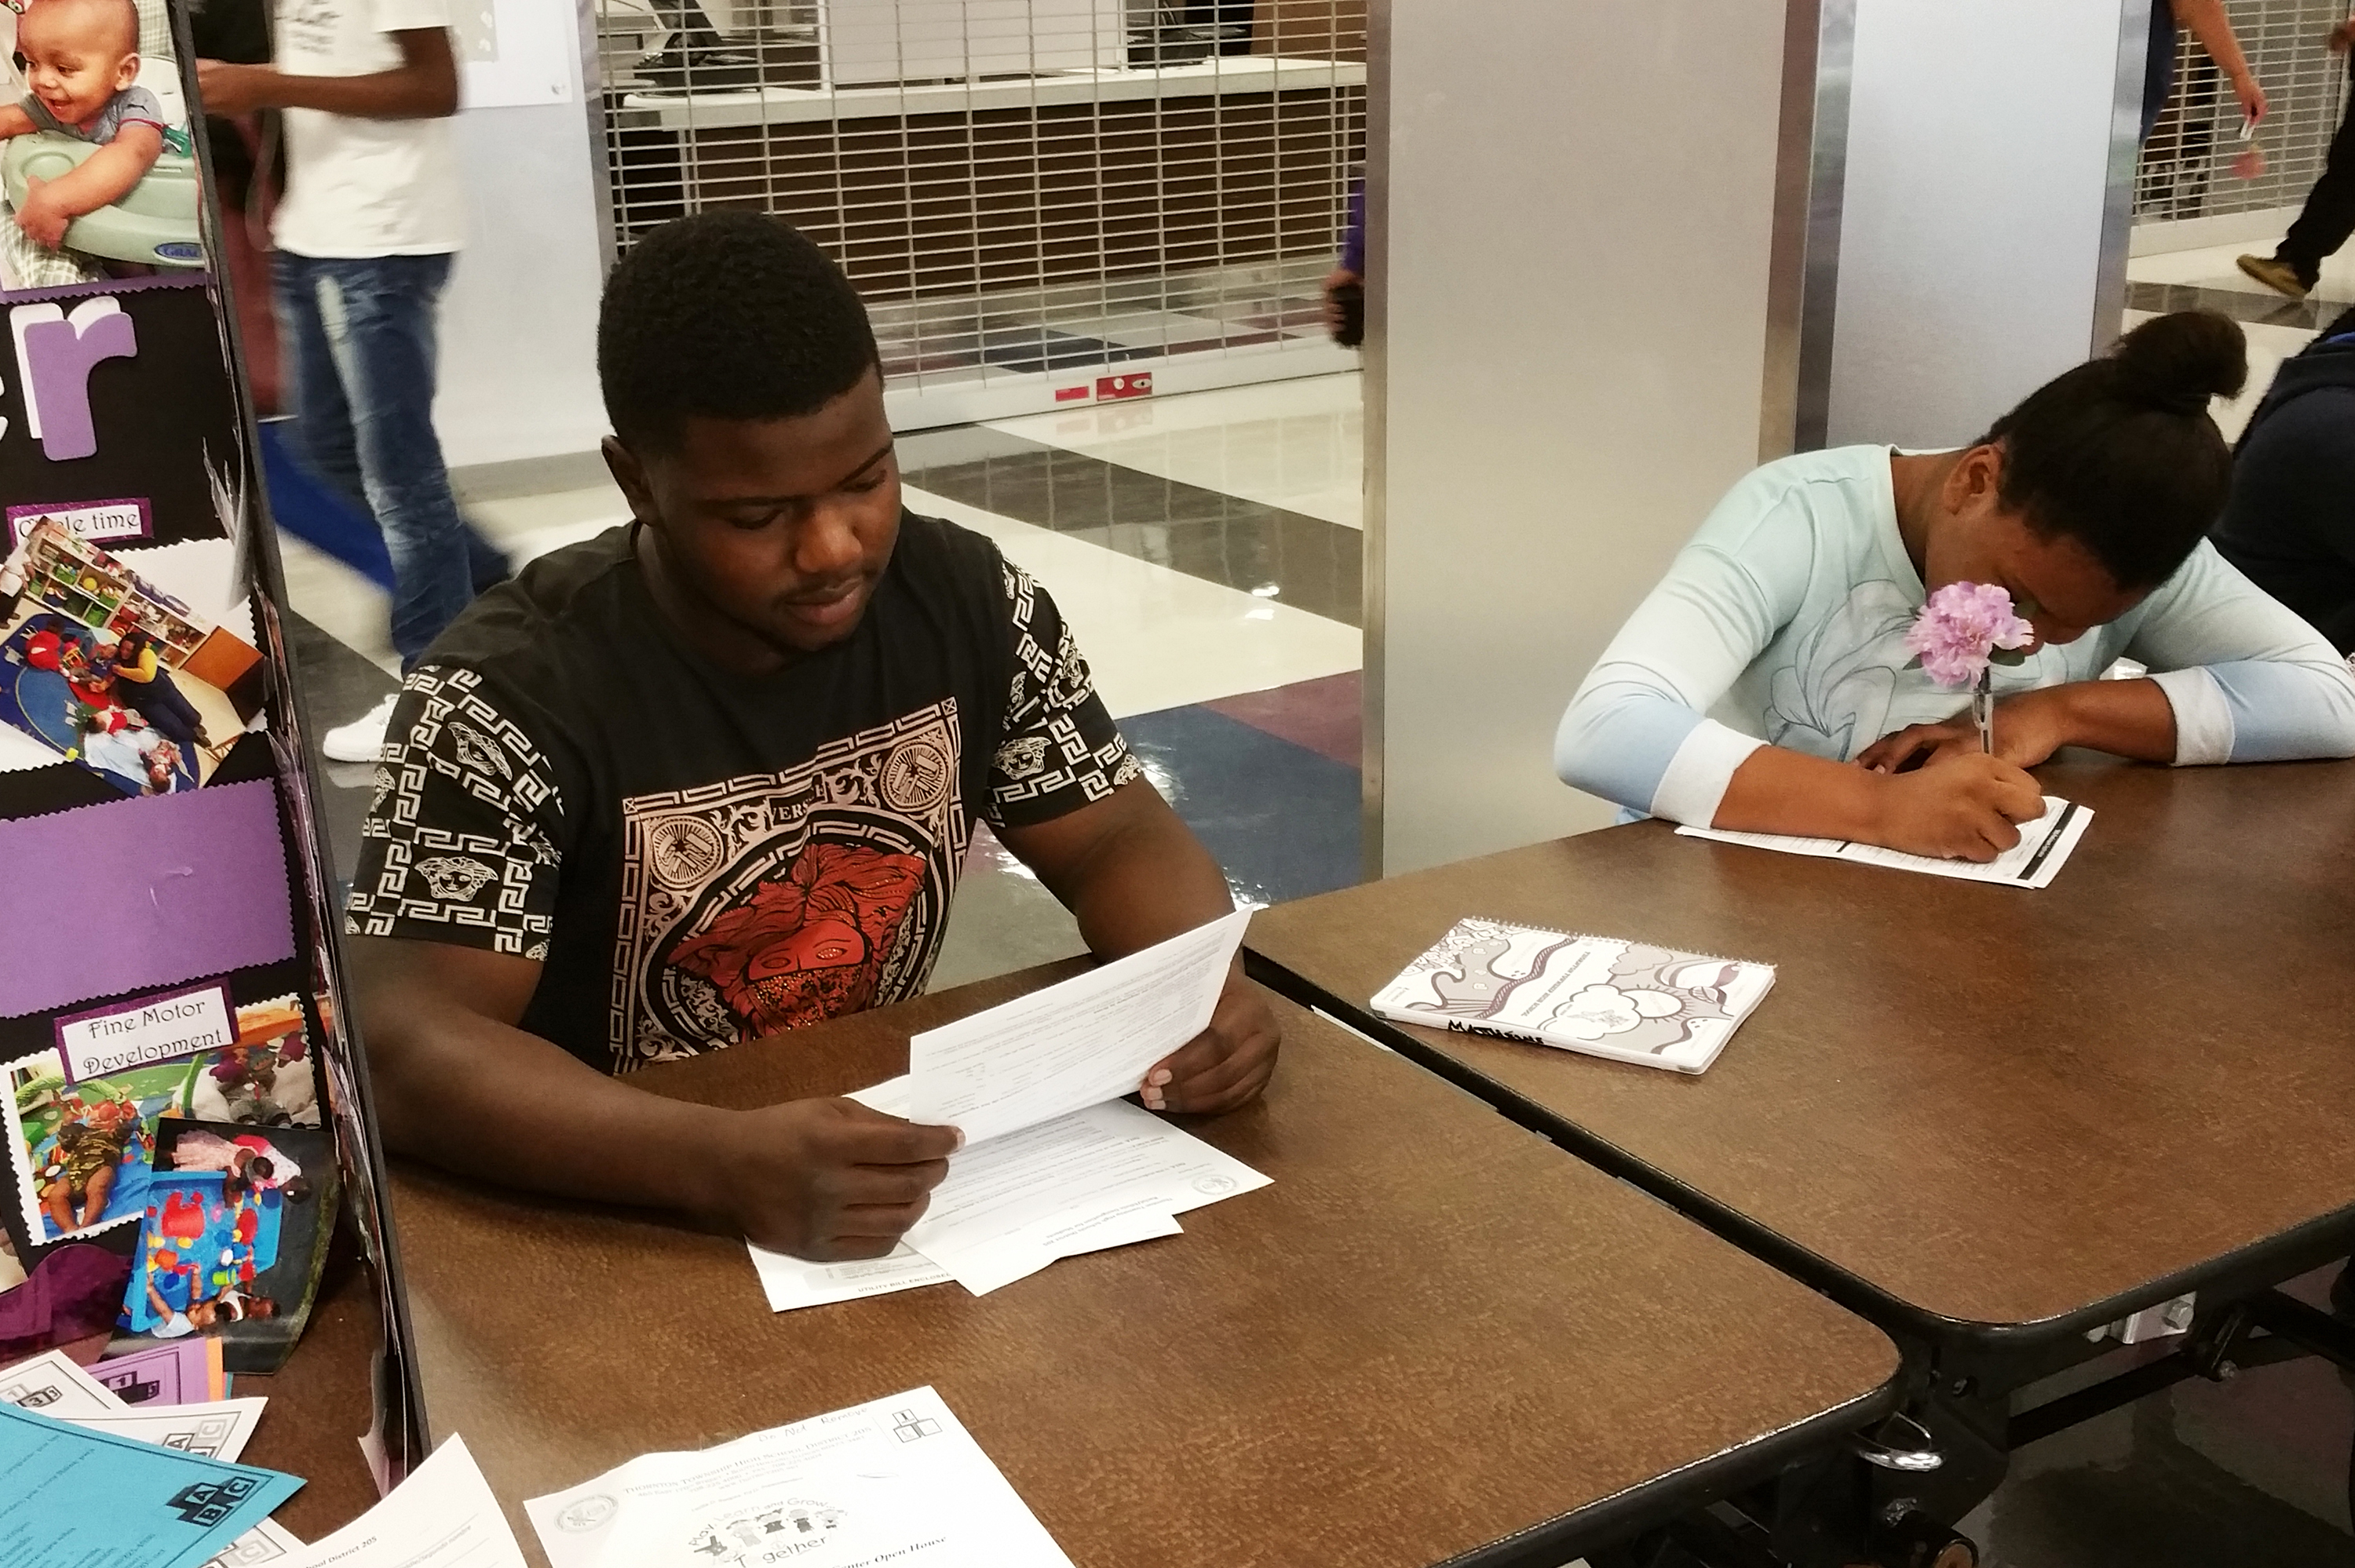 Derius Matthews, 17, fills out forms on registration day. He says he's ready for his senior year — and Thorton High's football season — to start. (Cheryl Corley/NPR)